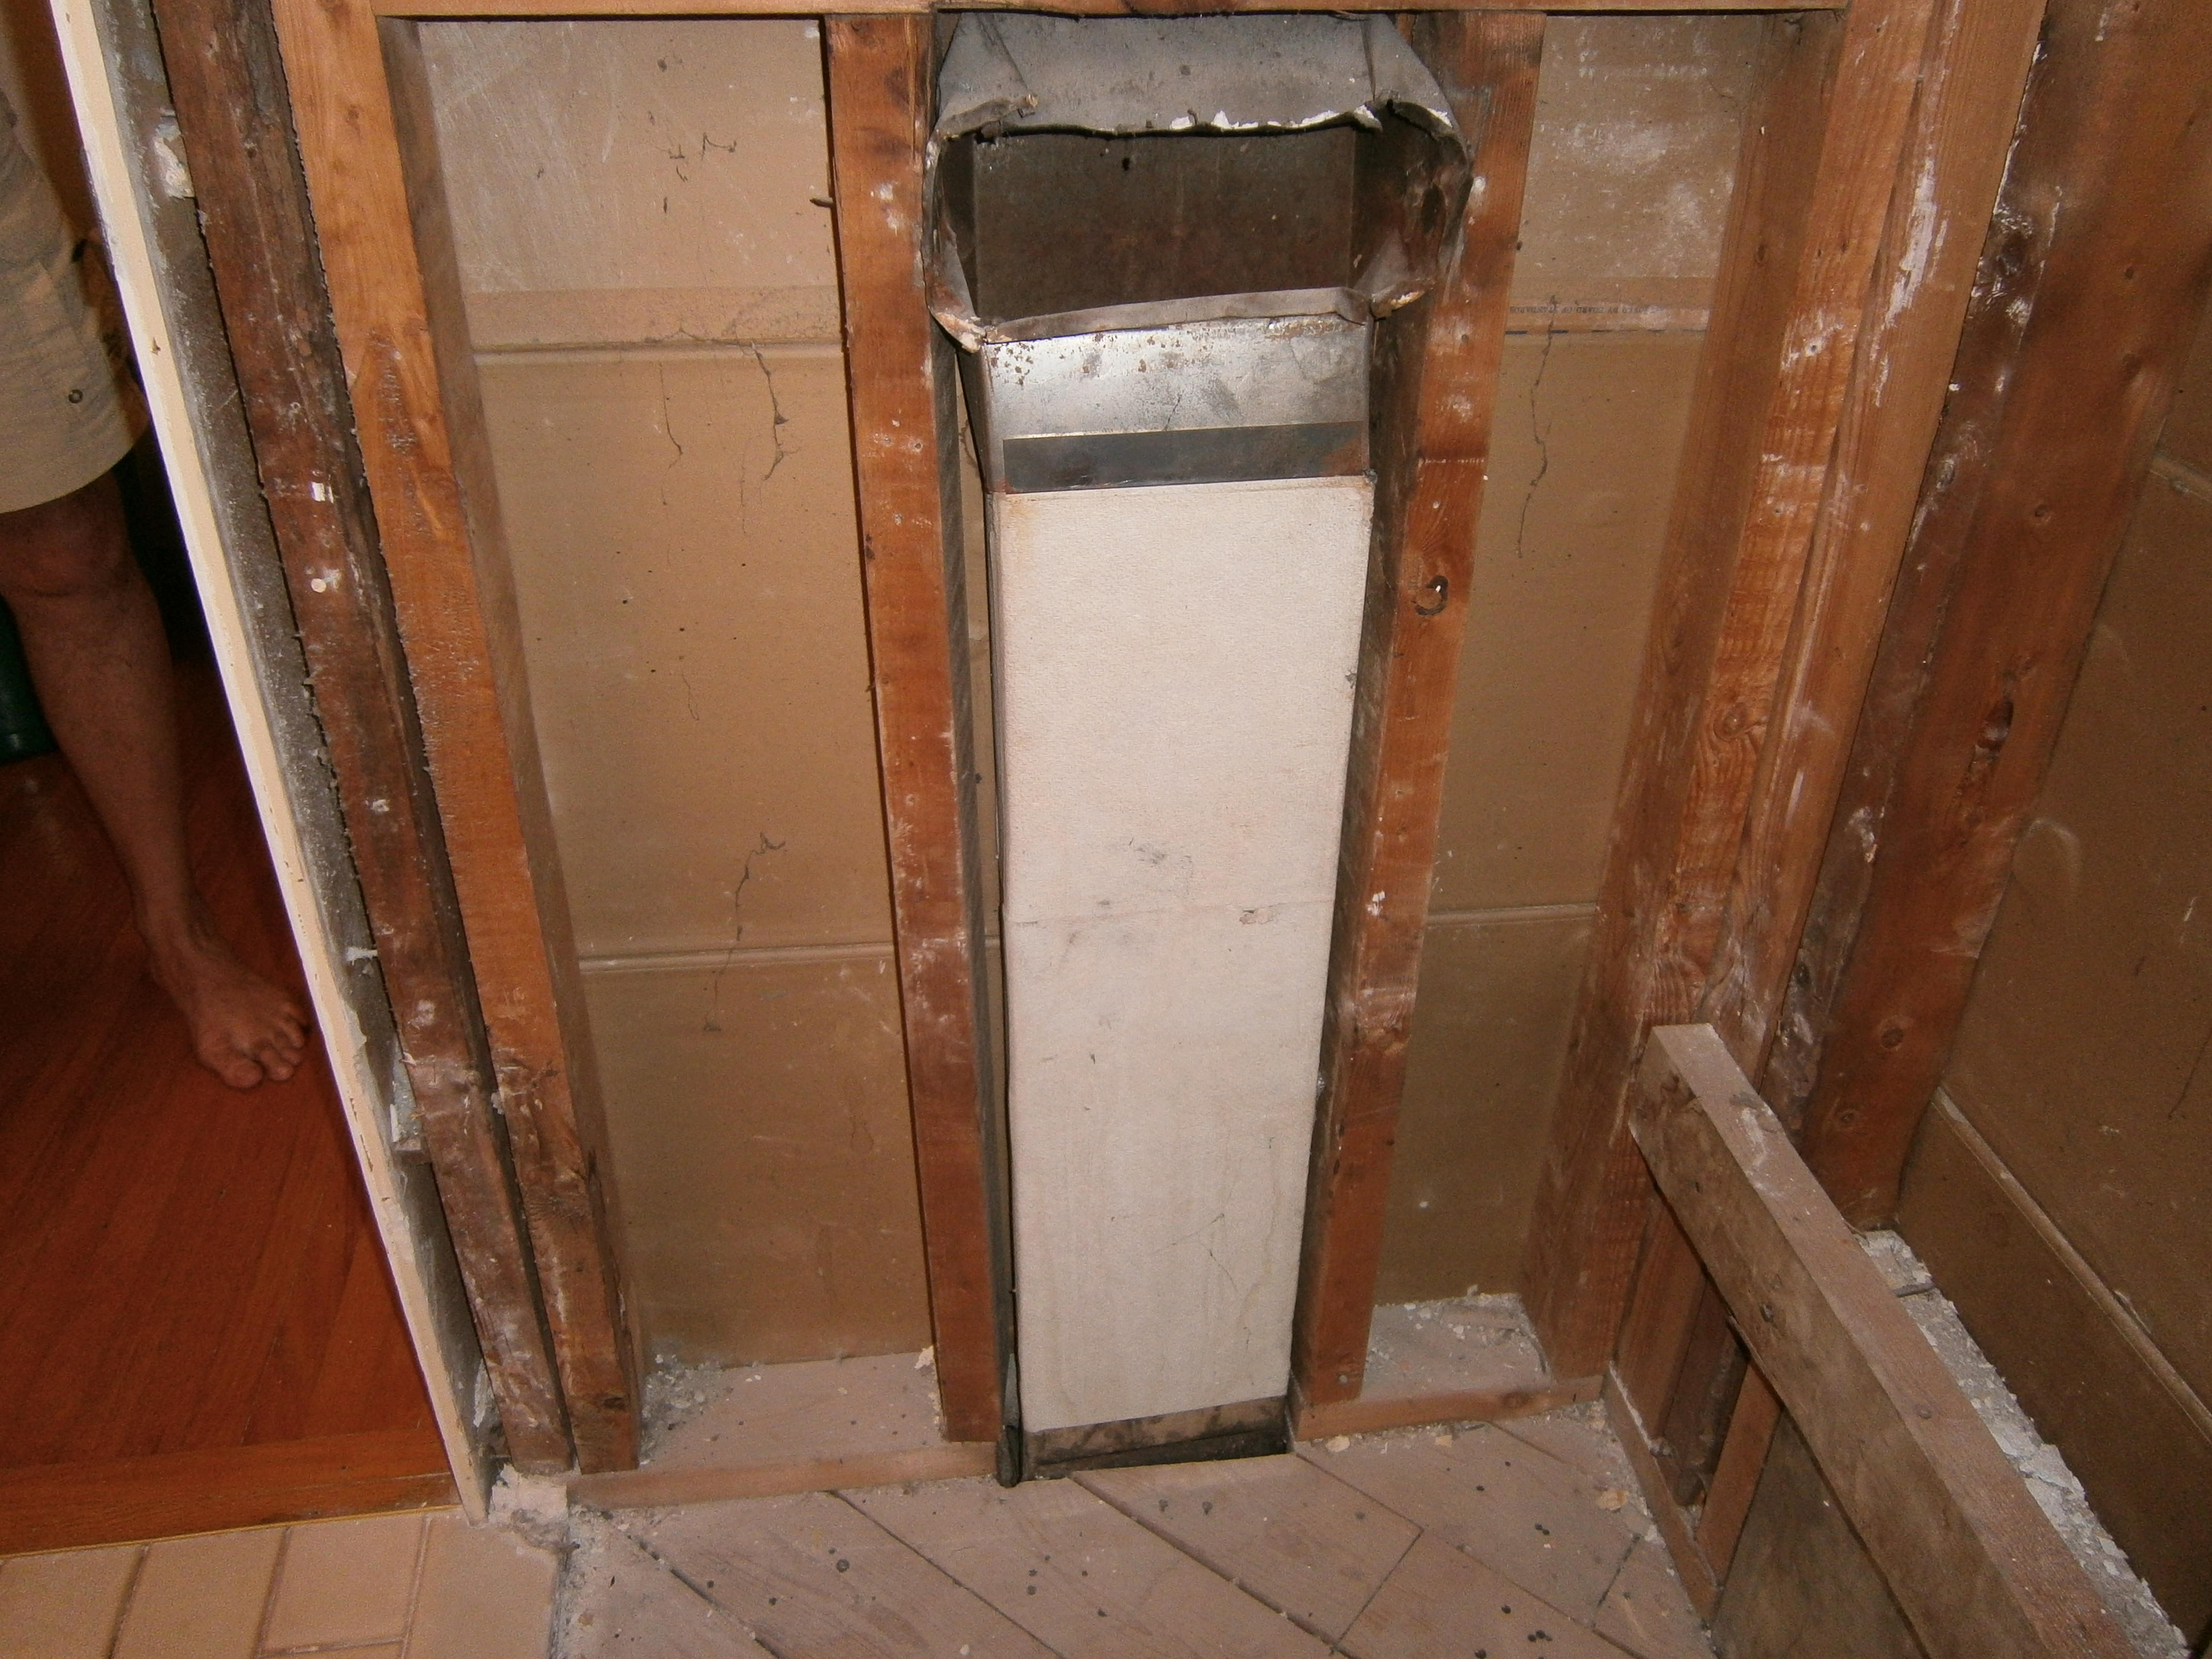 #693F26 Asbestos Insulation Removal Recommended 2437 Duct Pipe Insulation pics with 4288x3216 px on helpvideos.info - Air Conditioners, Air Coolers and more